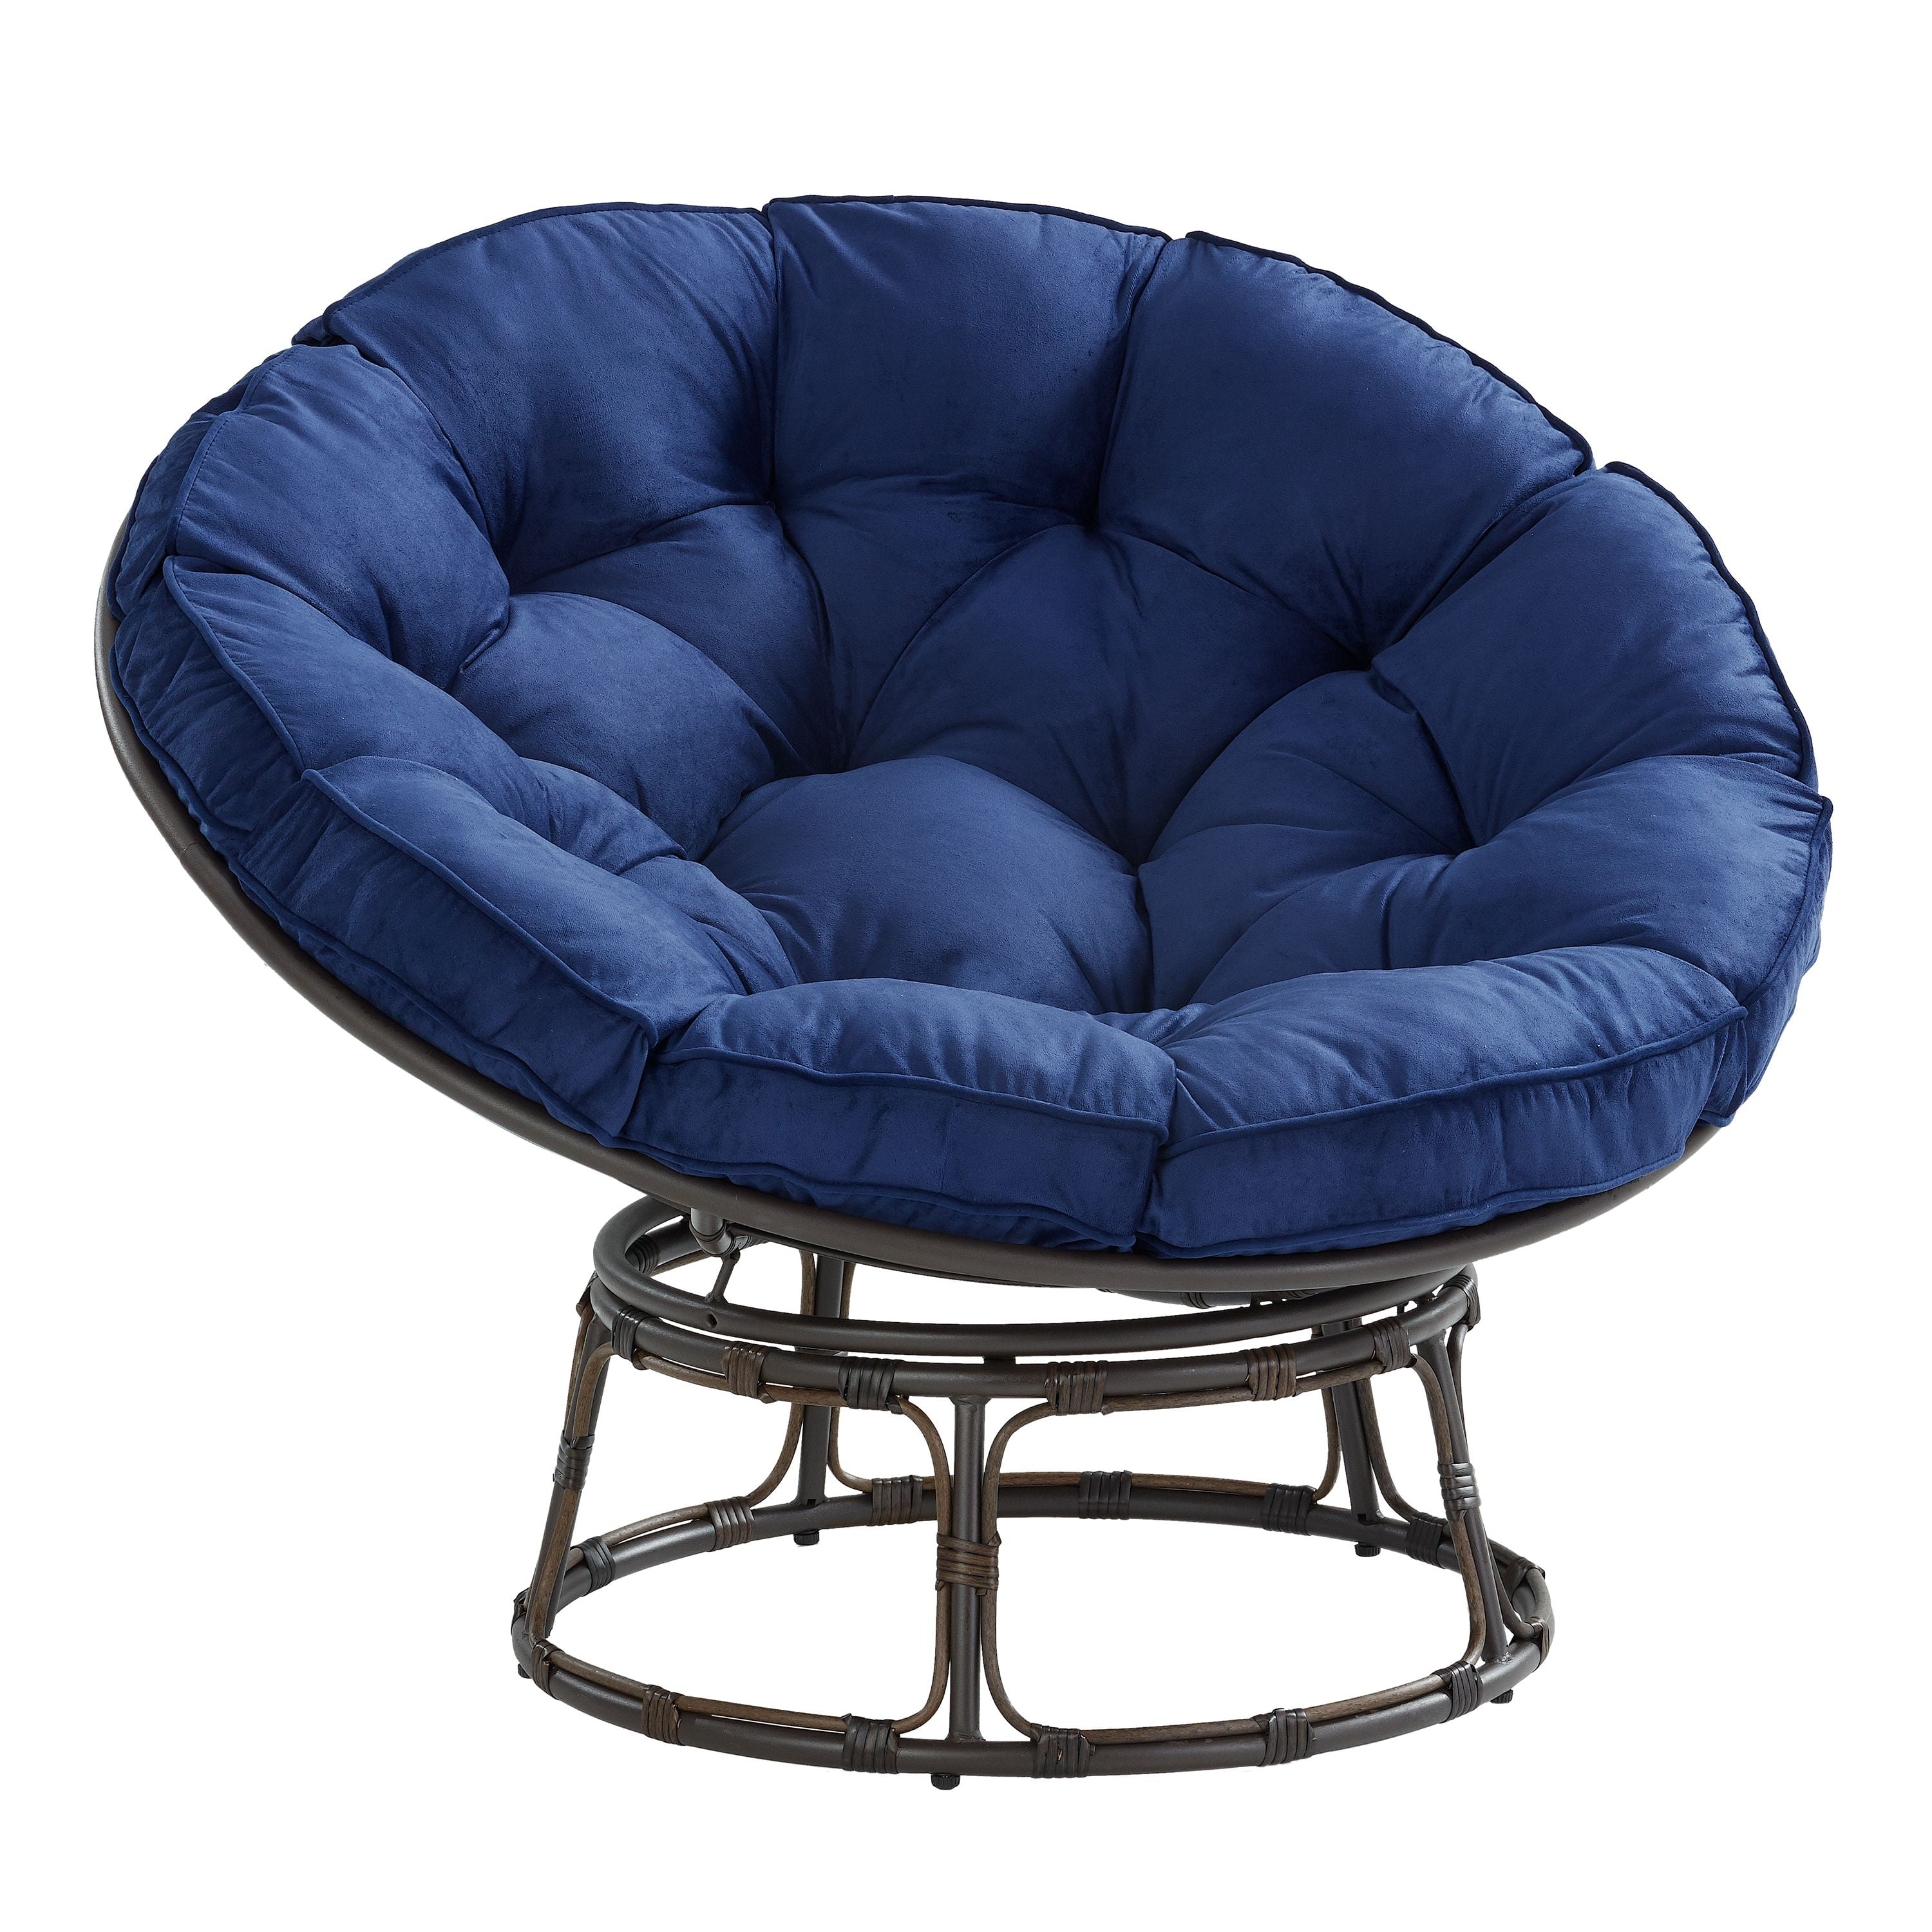 Better Homes & Gardens Papasan Chair with Cushion Multiple Colors